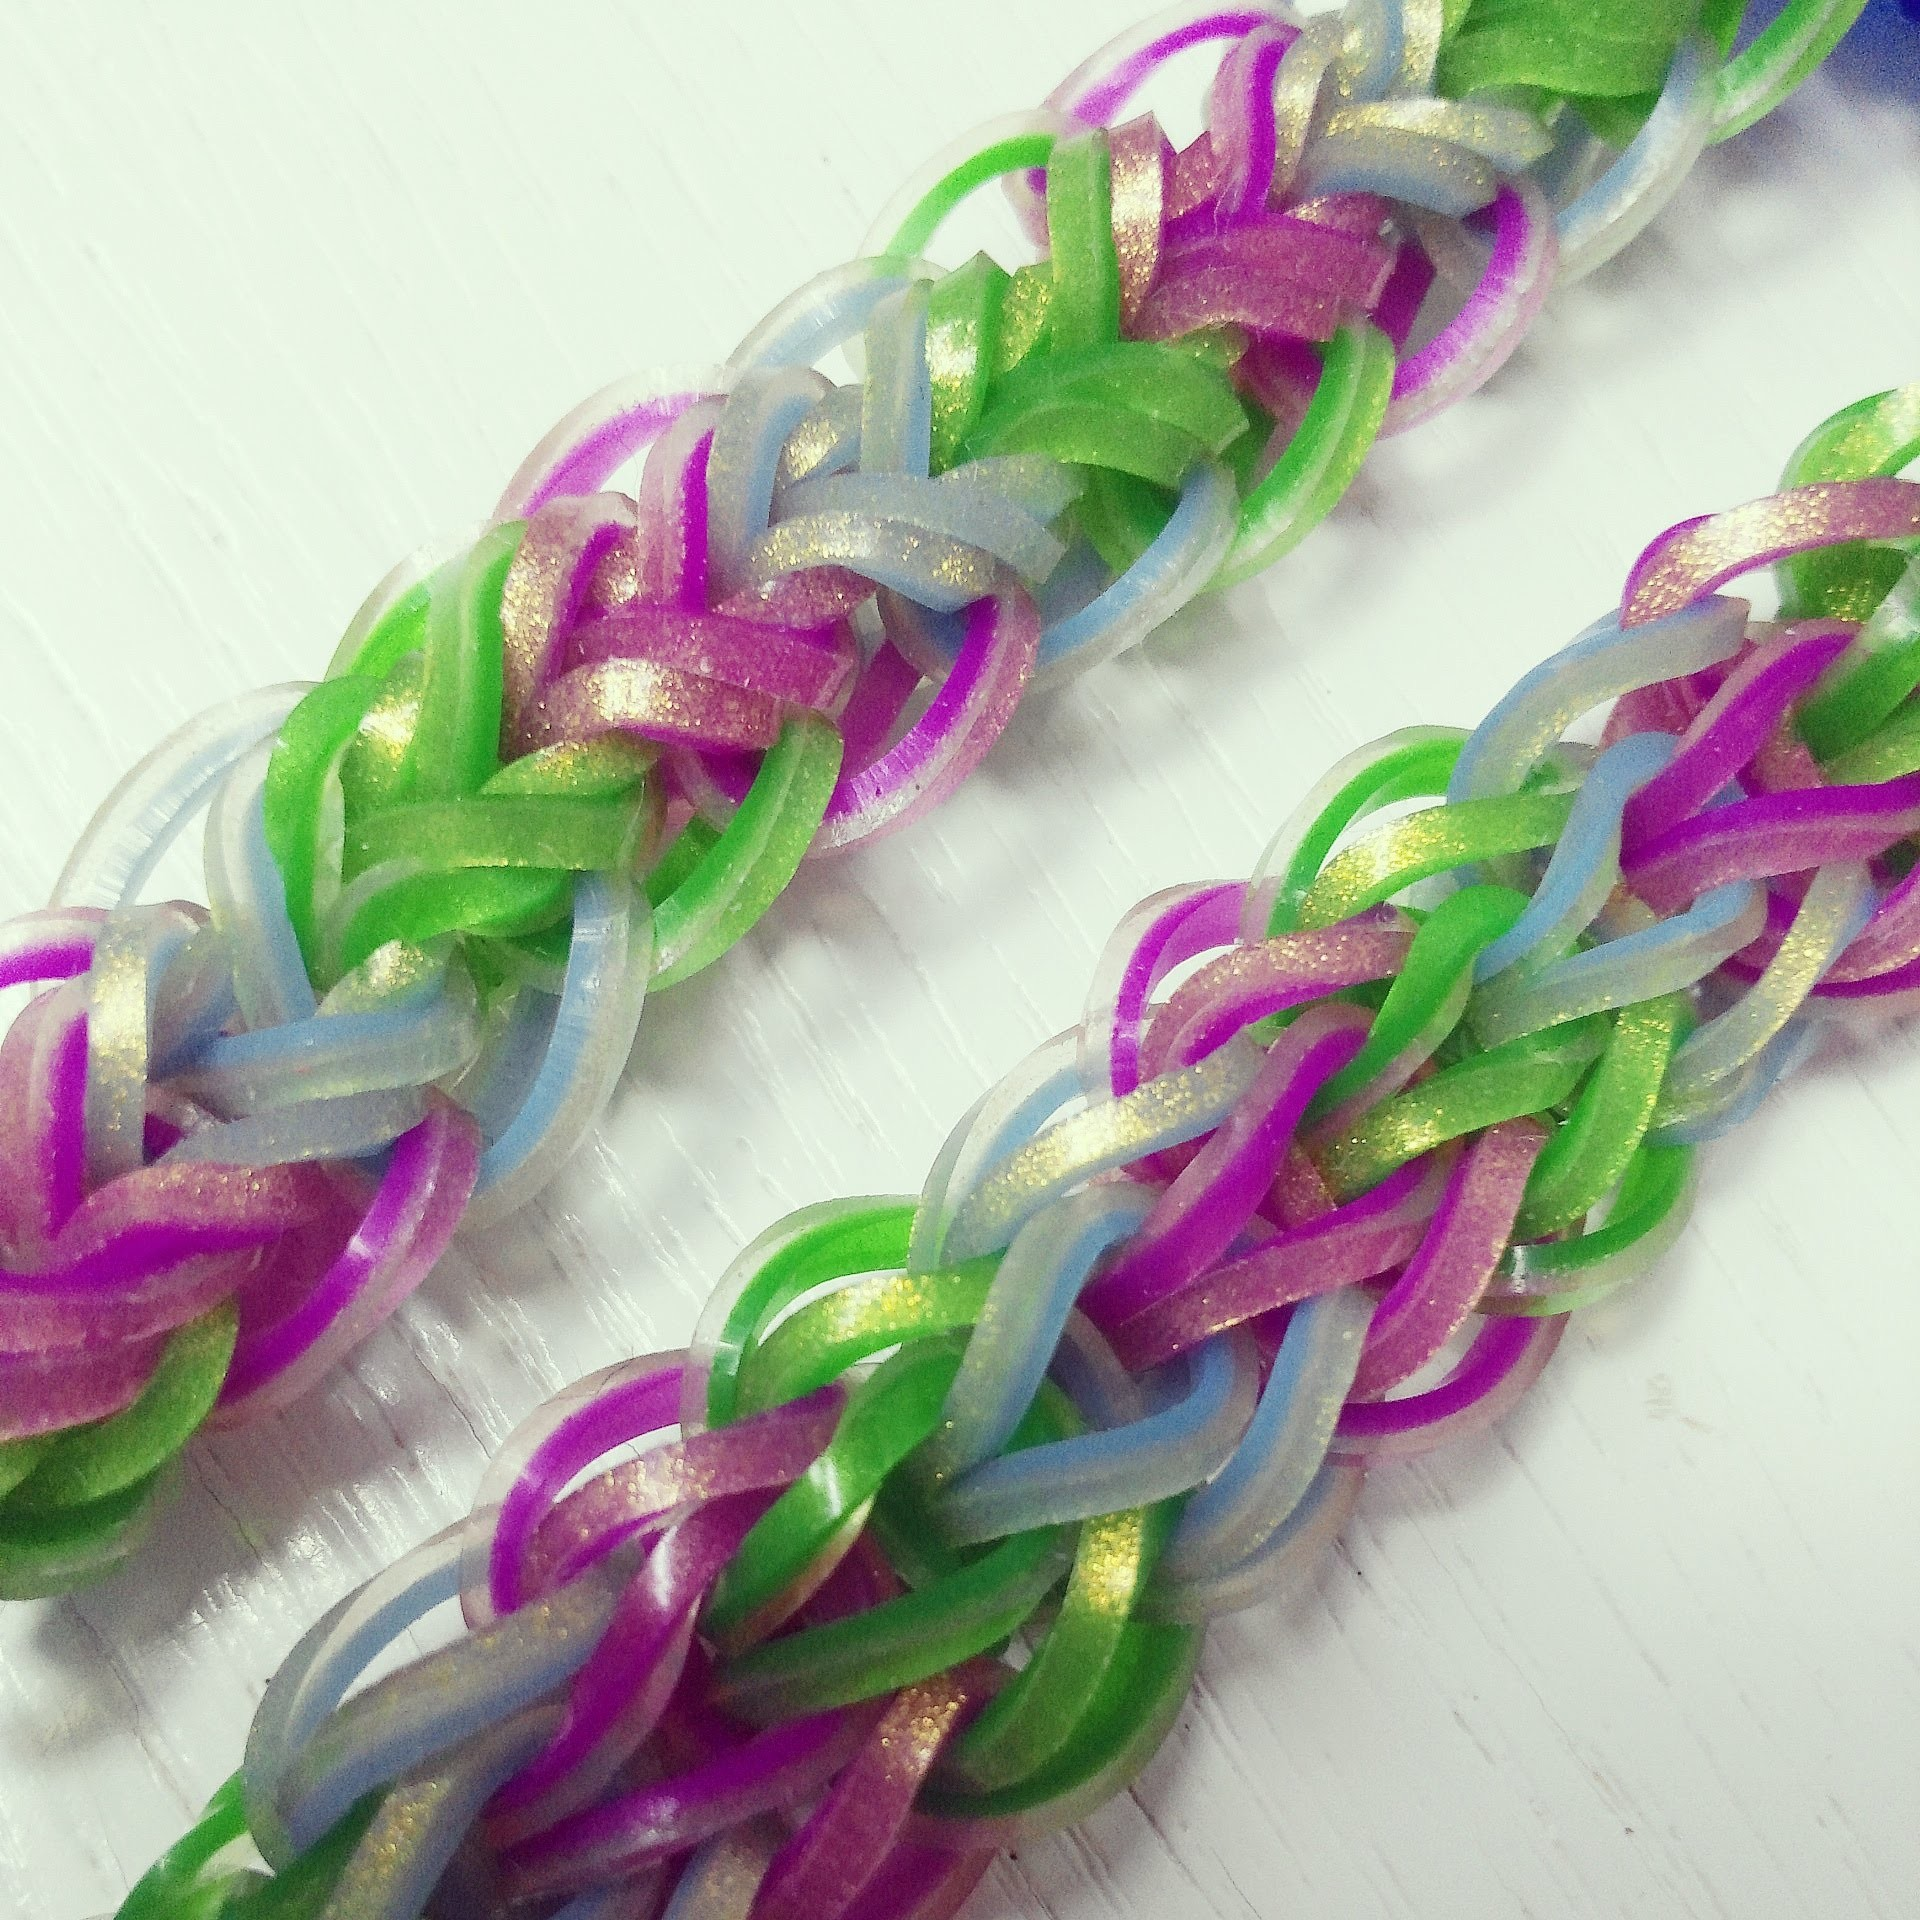 NEW Triple Raindrops Rainbow Loom Bracelet Tutorial (Original Design)